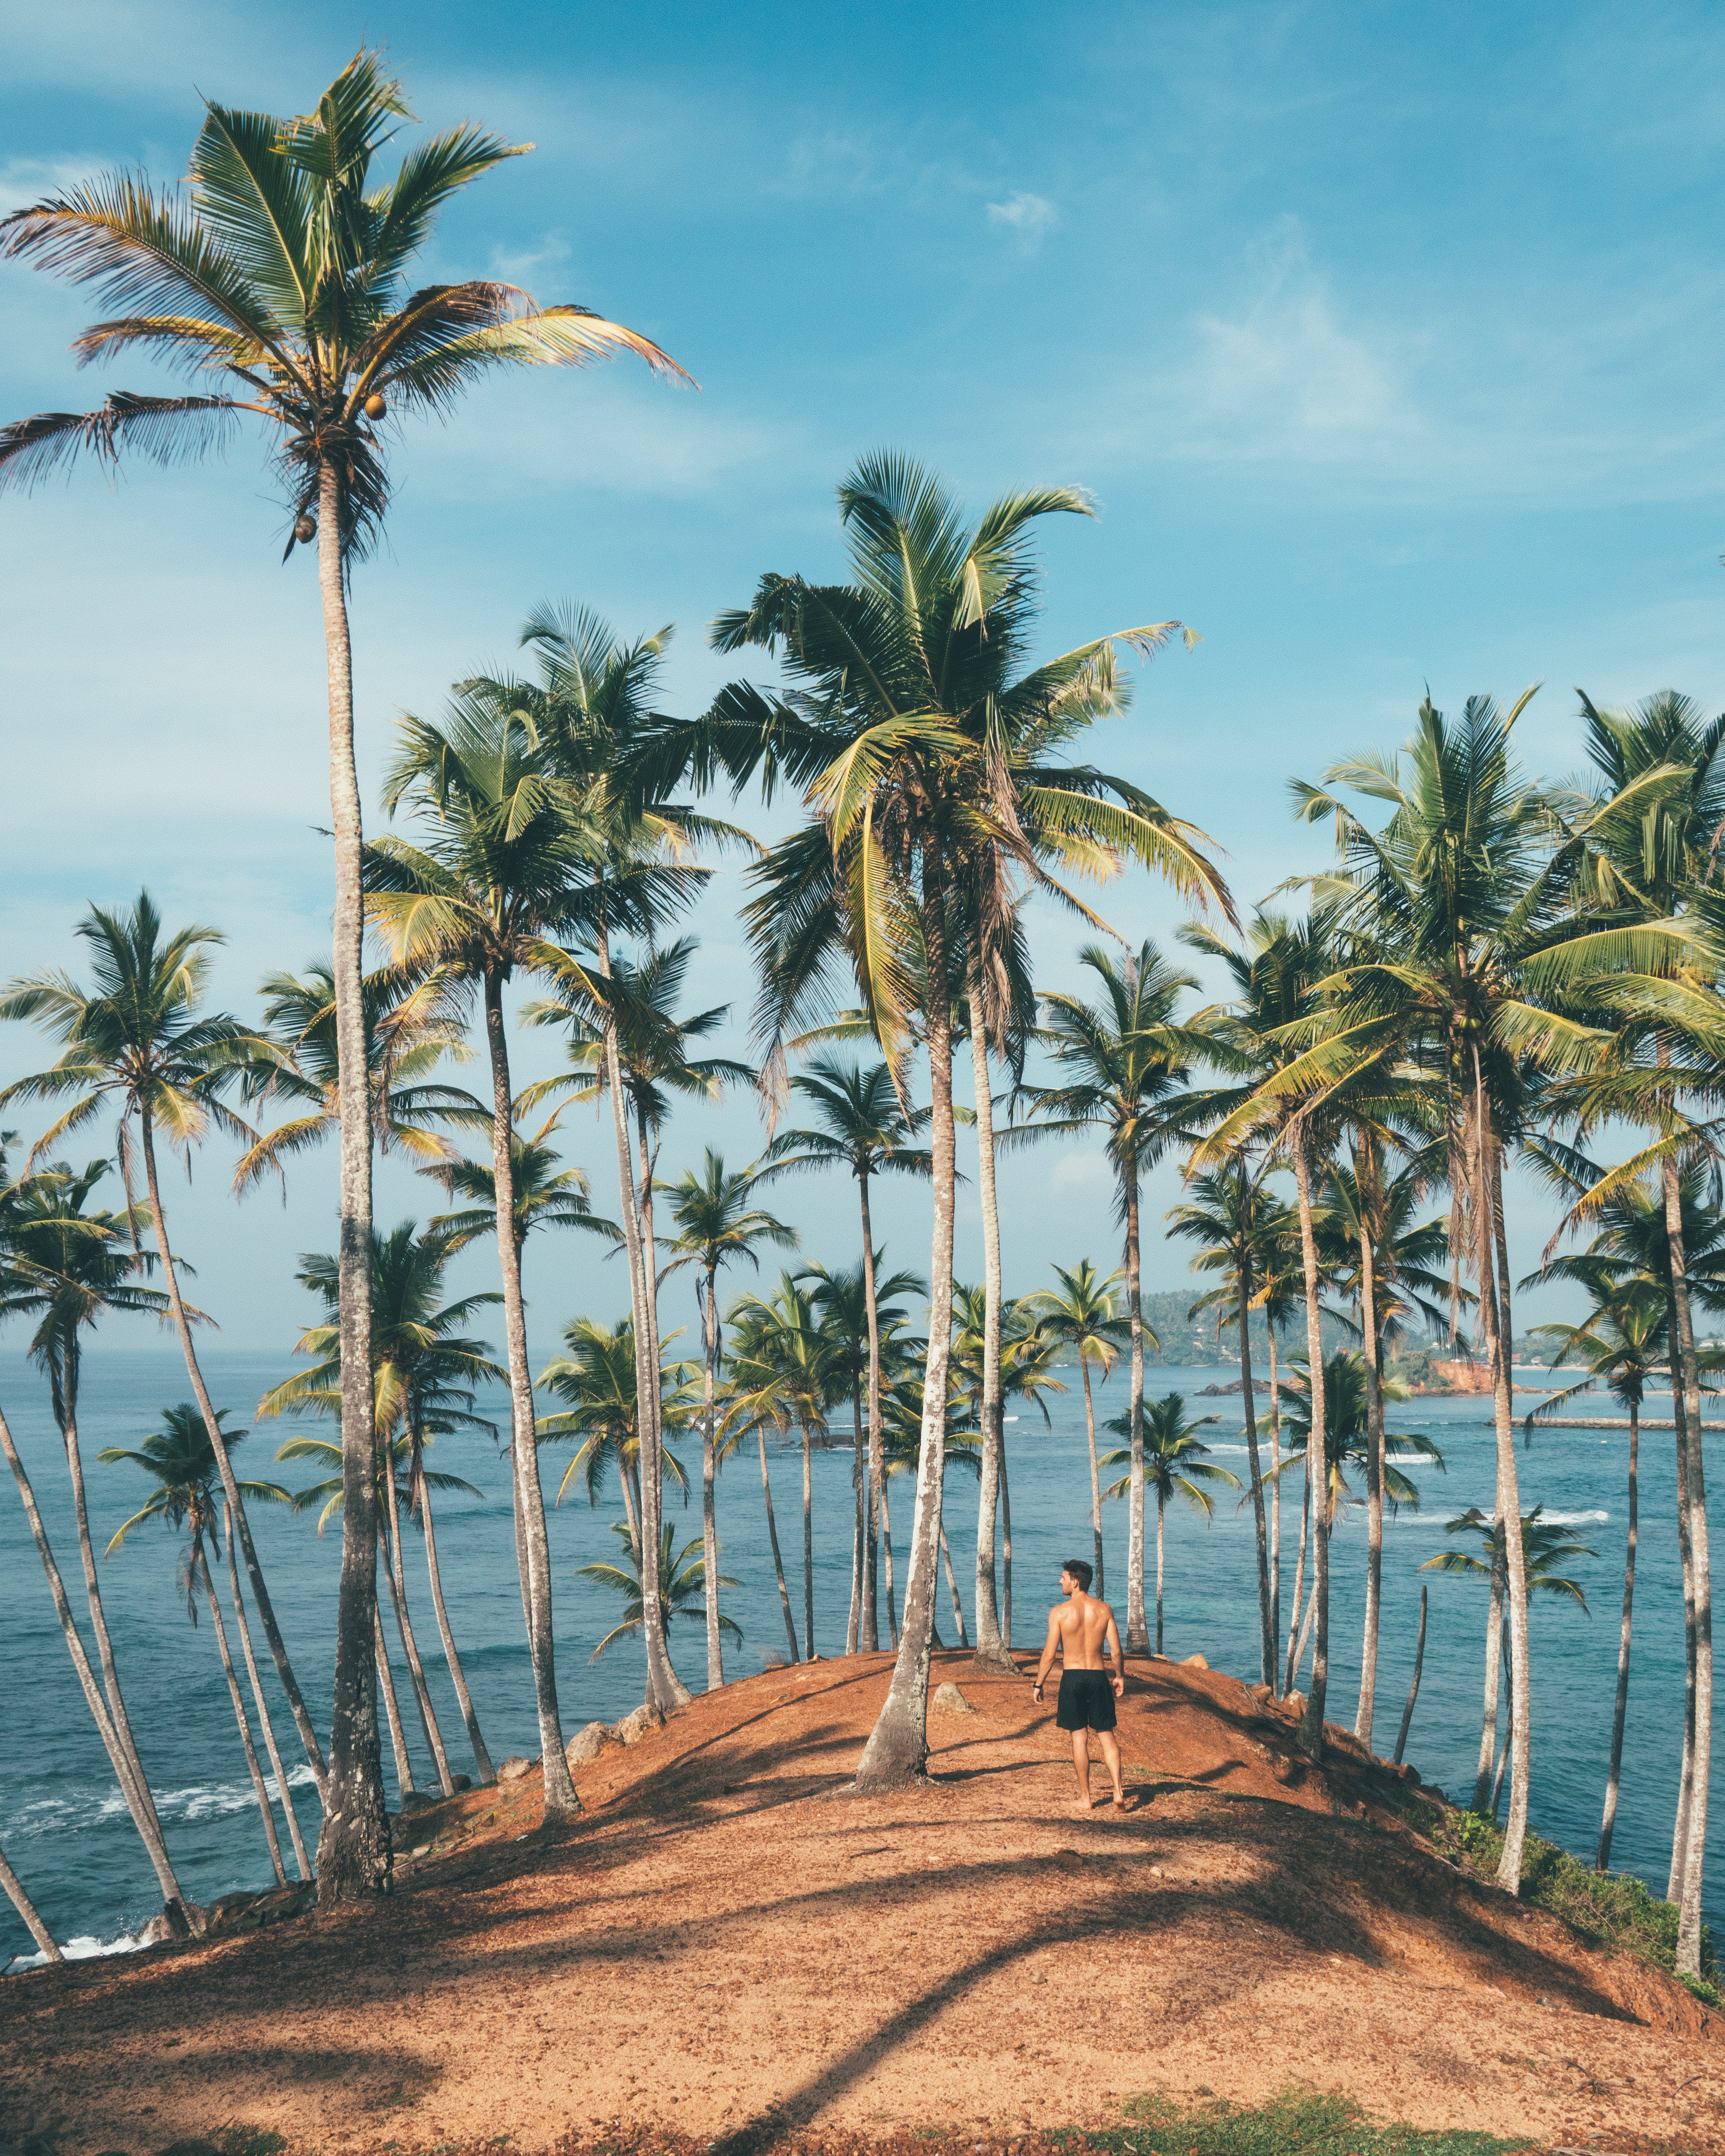 Person Standing on Dirt Surrounded by Coconut Trees